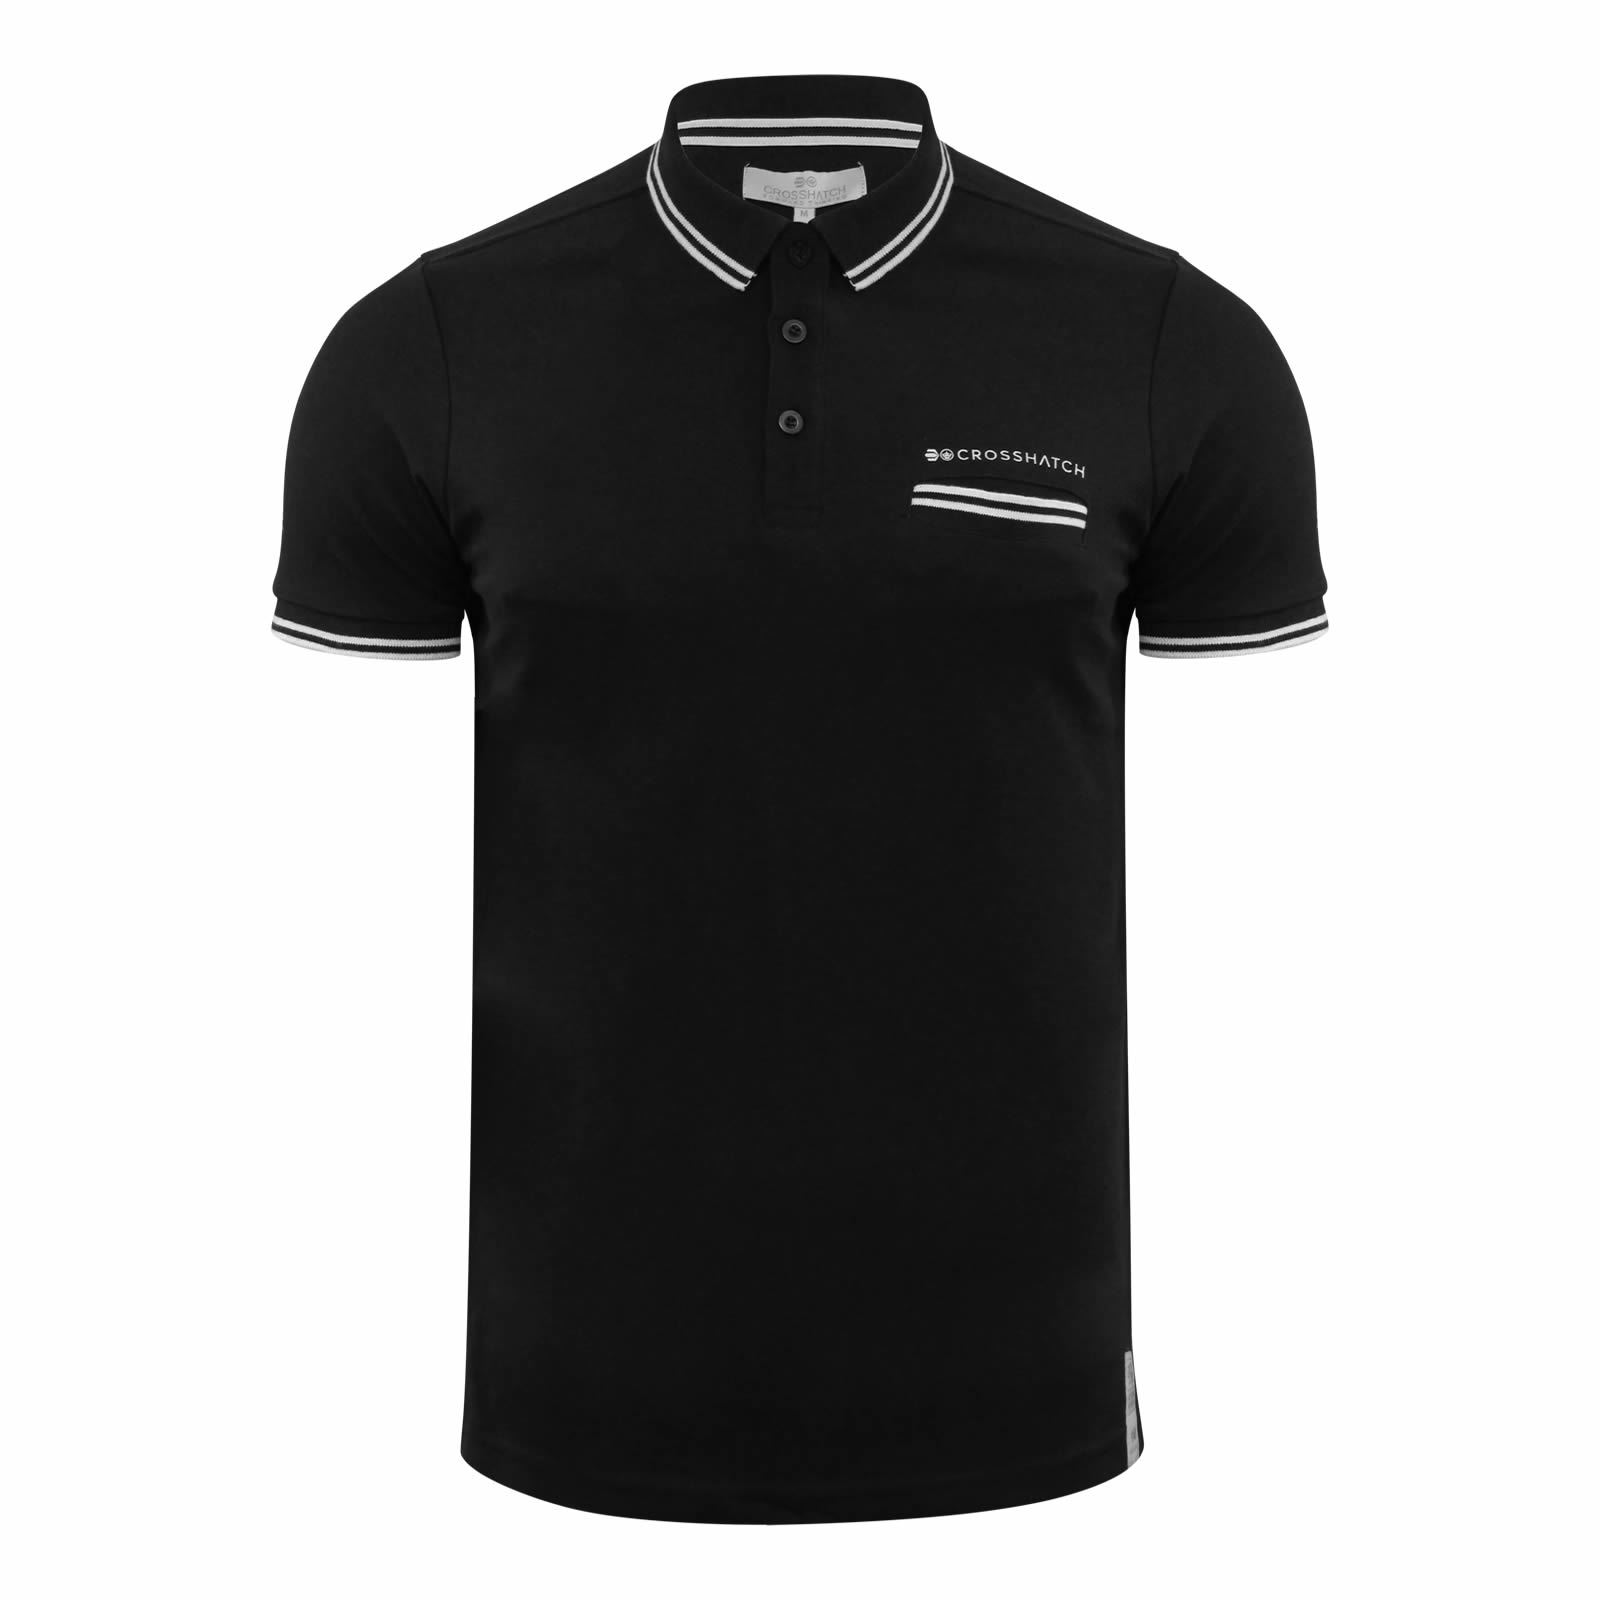 Crosshatch-Mens-Polo-T-Shirt-Pique-Polo-Cotton-Collared-Short-Sleeve-T-Shirt thumbnail 61